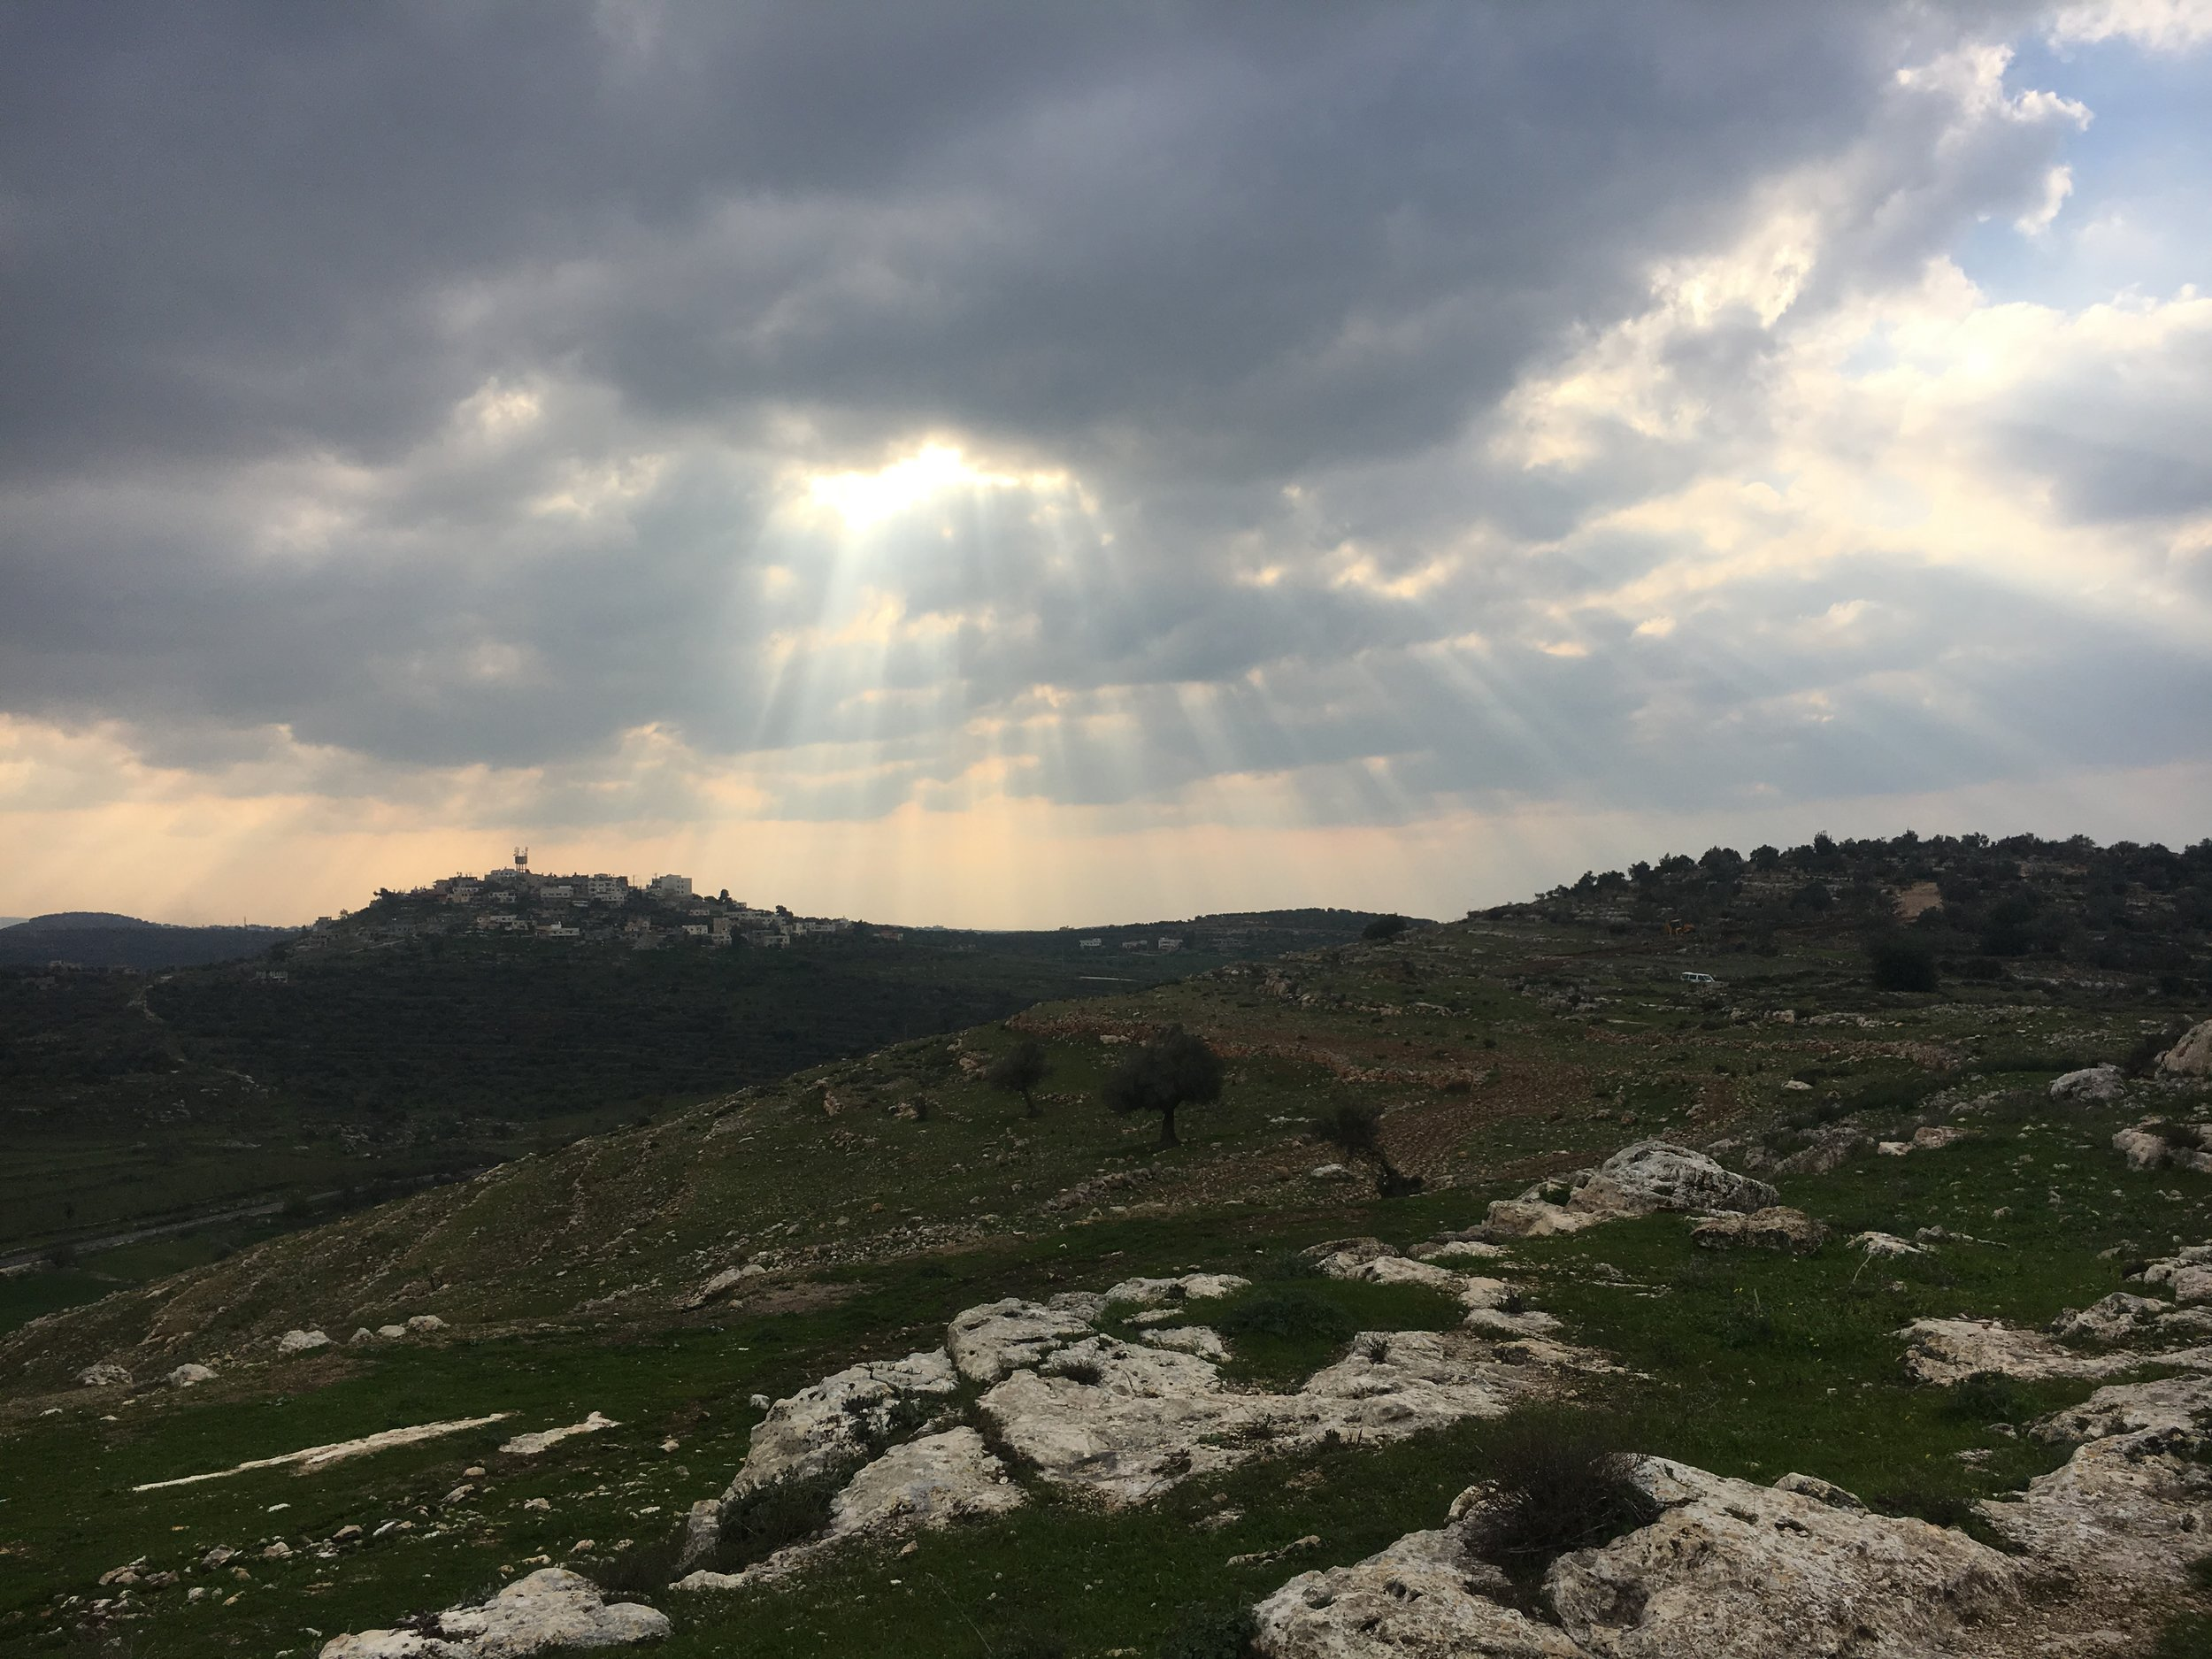 The land of Nabi Saleh, West Bank. Visible atop a hill is an Israeli settlement.